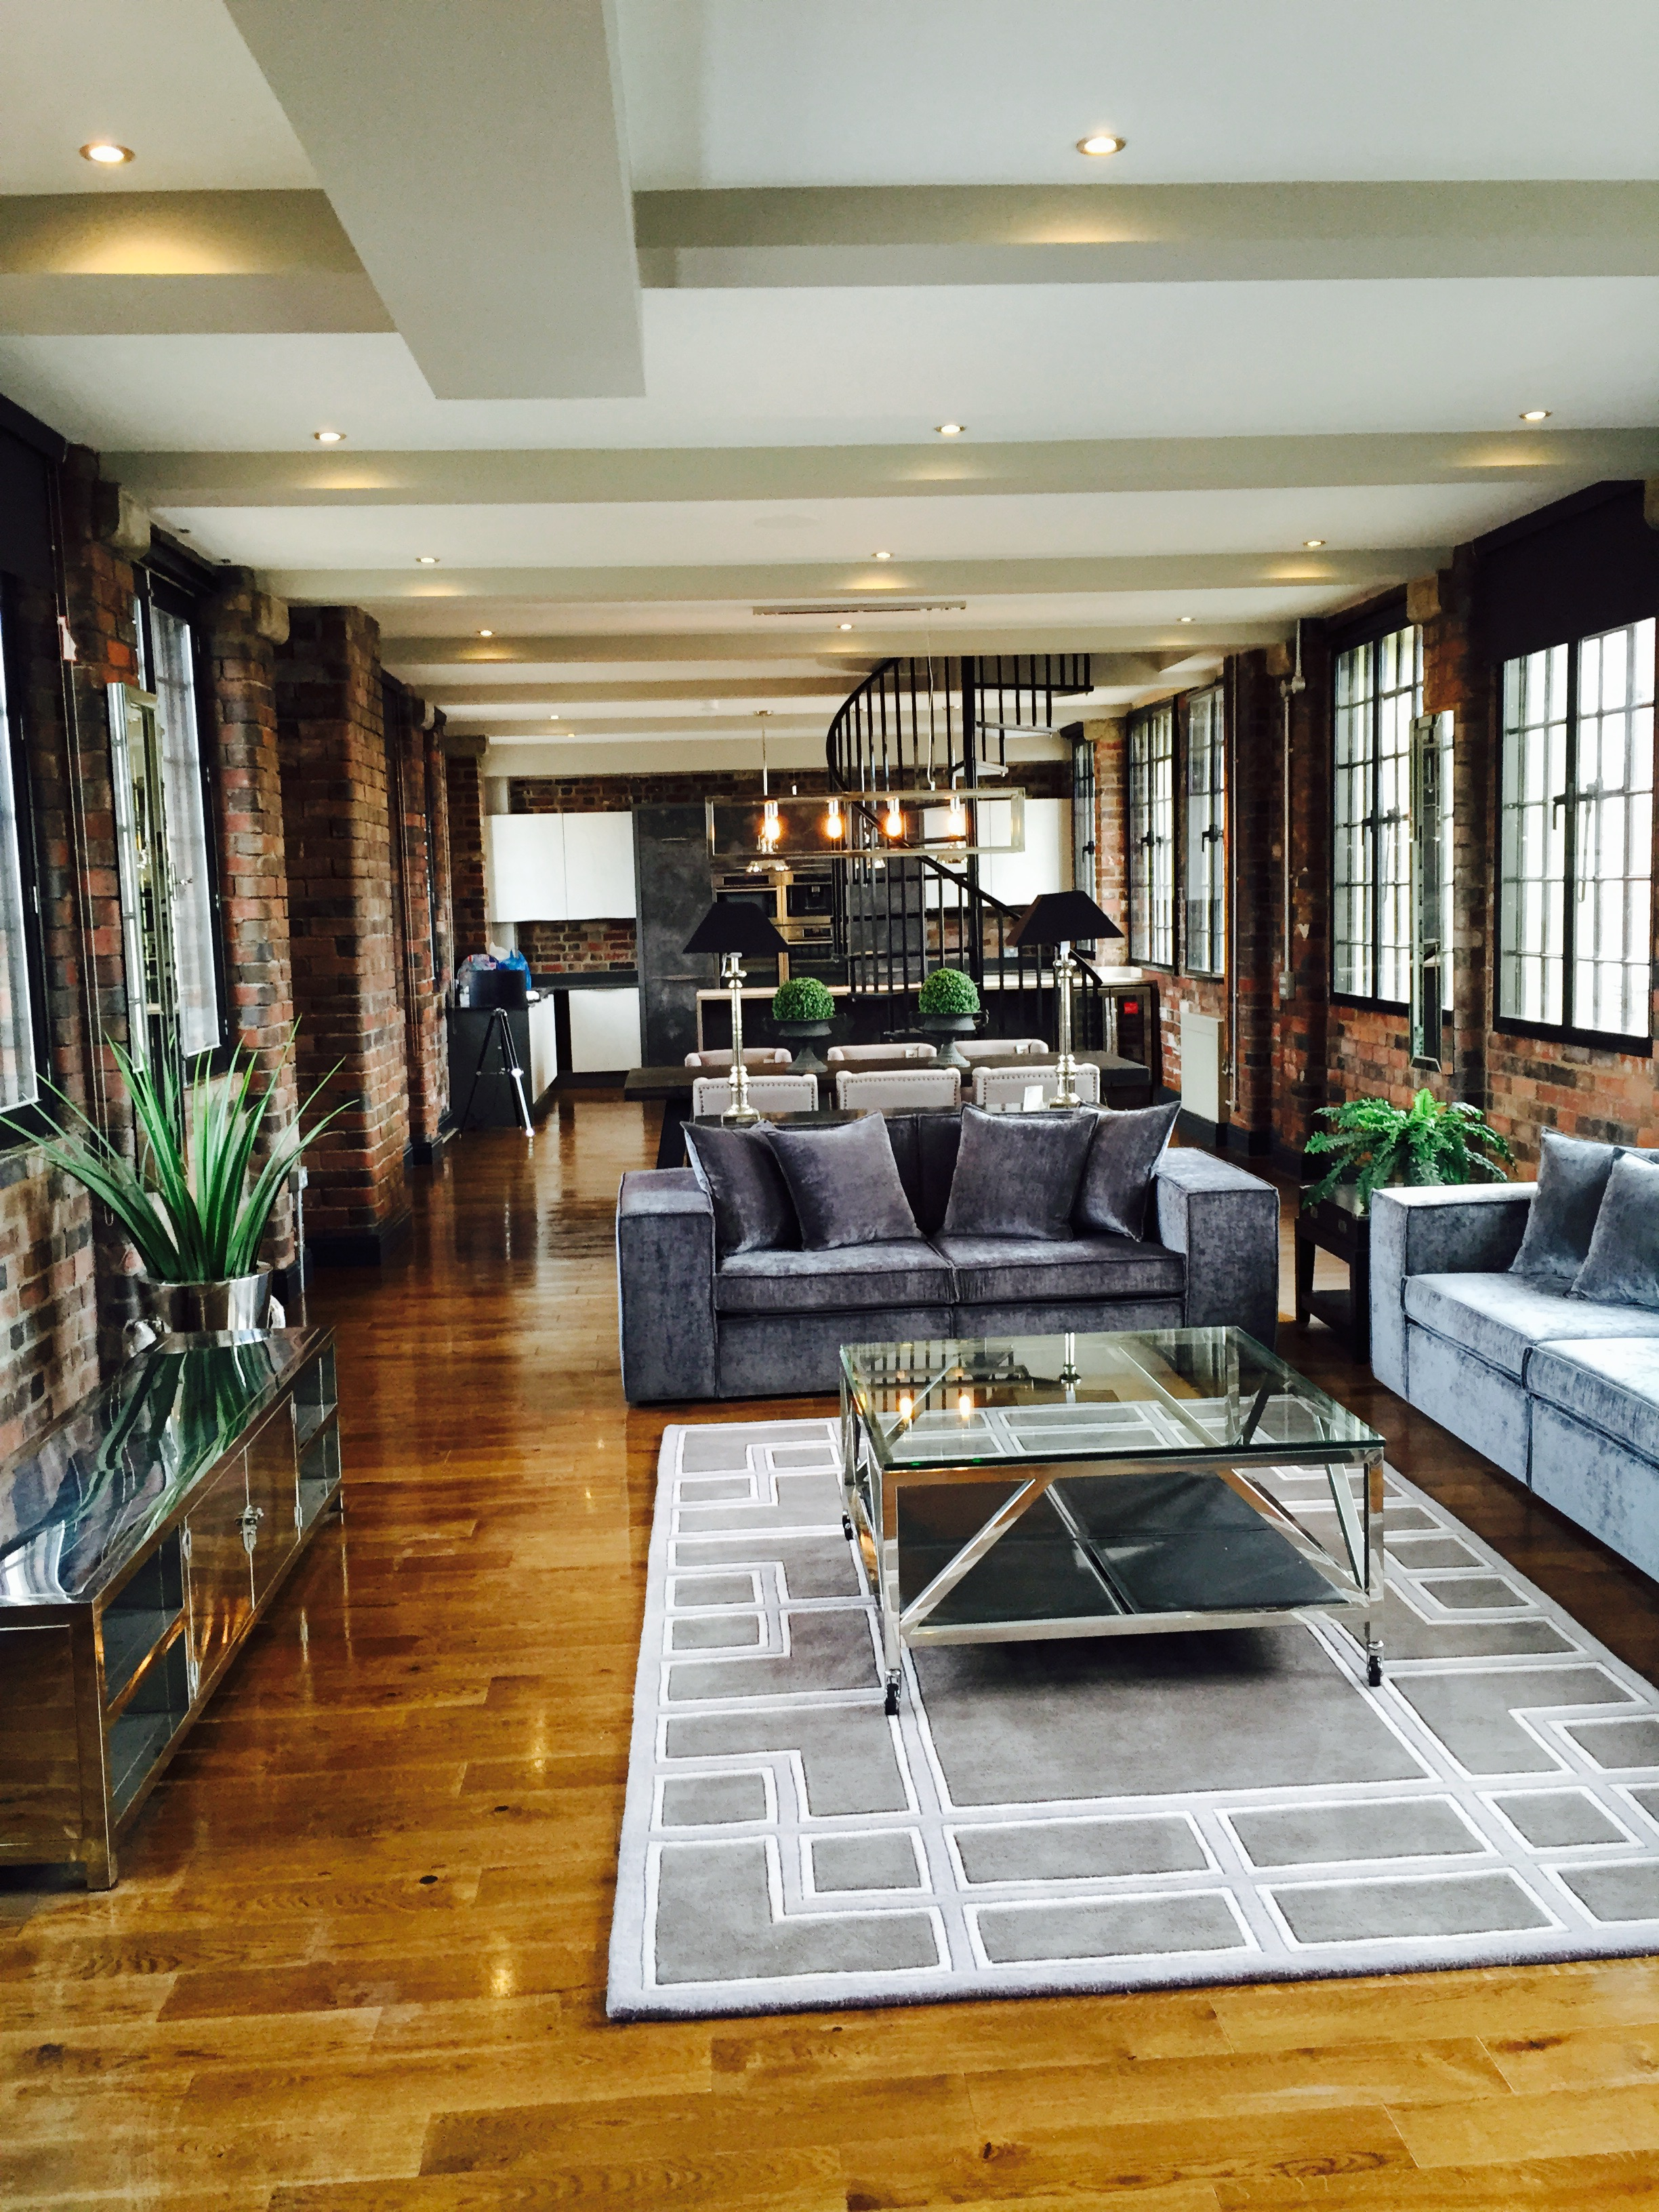 Birmingham City Centre Loft Apartments